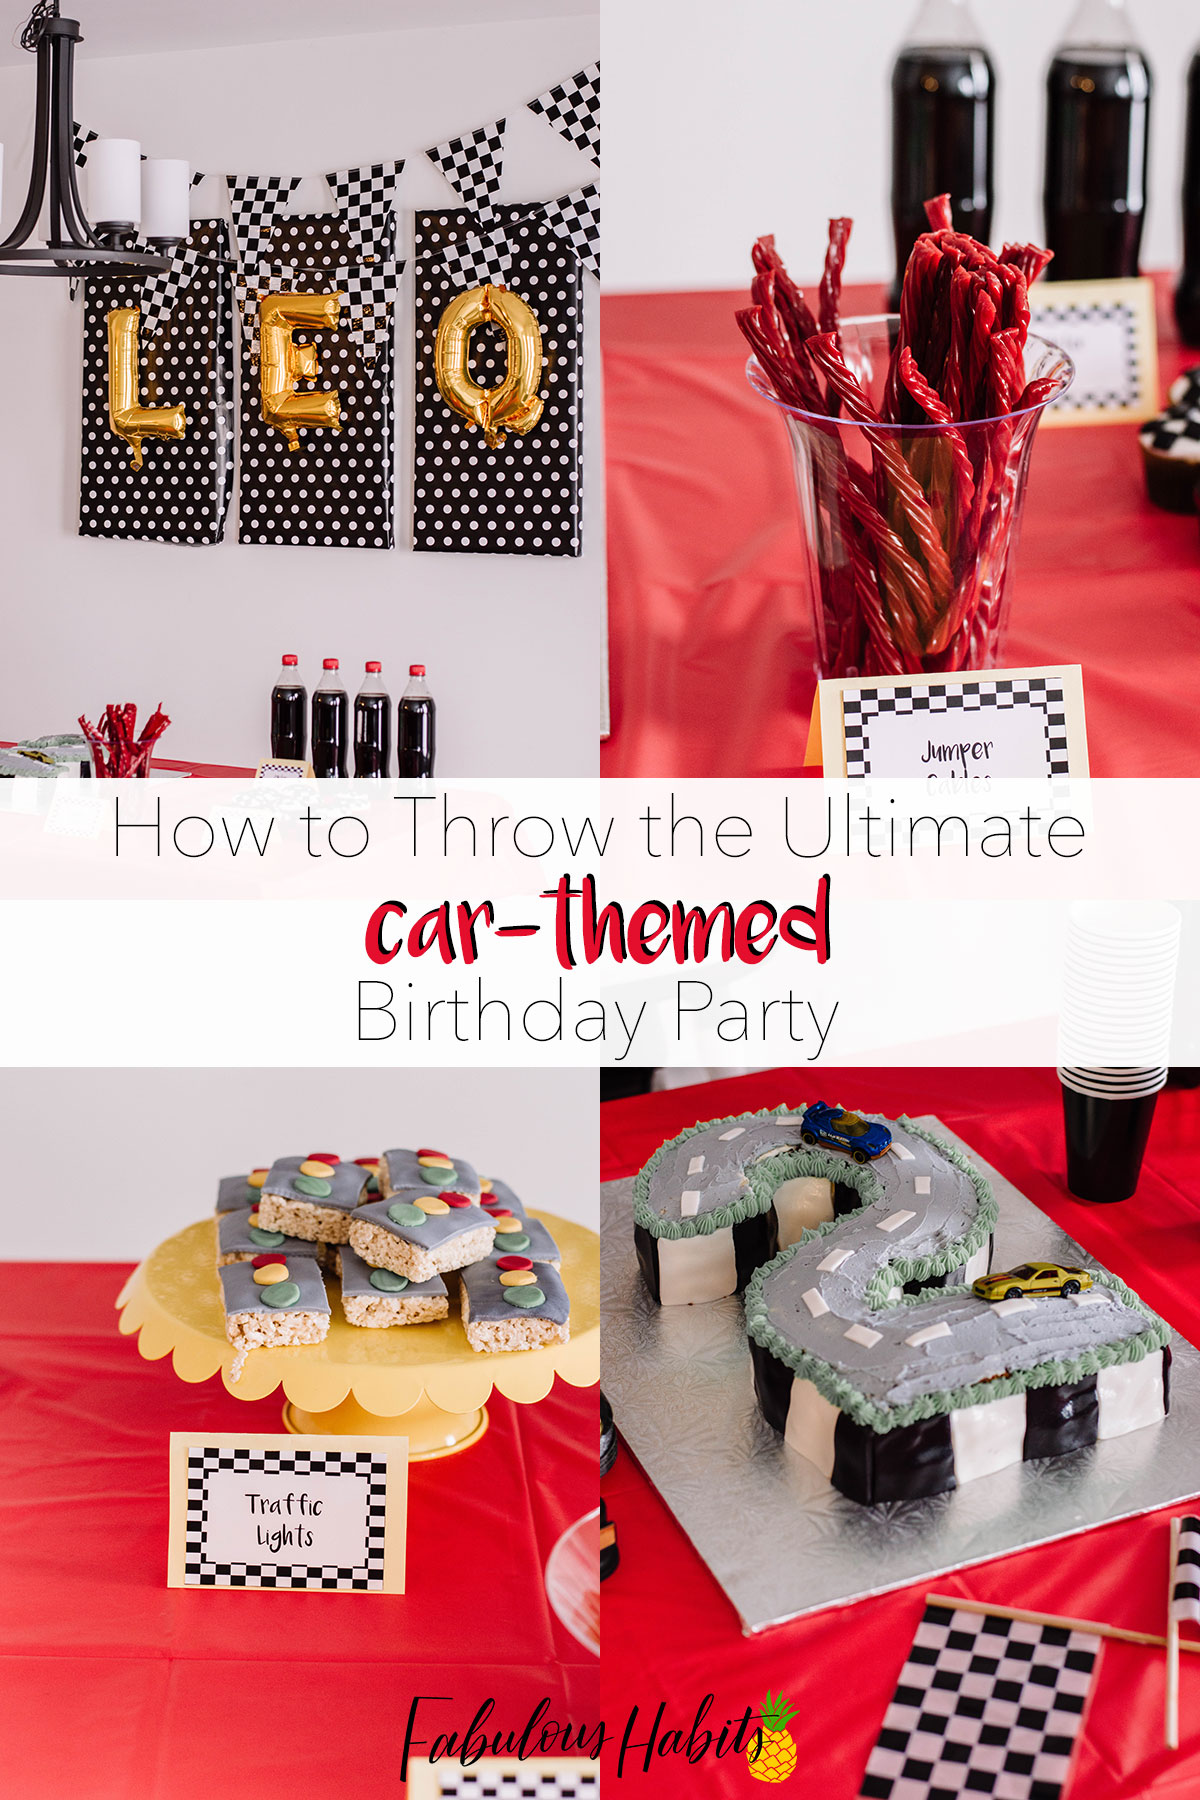 Thinking of throwing a car-themed birthday party? Here are all the elements you need... down to the last detailed touch! Vroom, vroom!